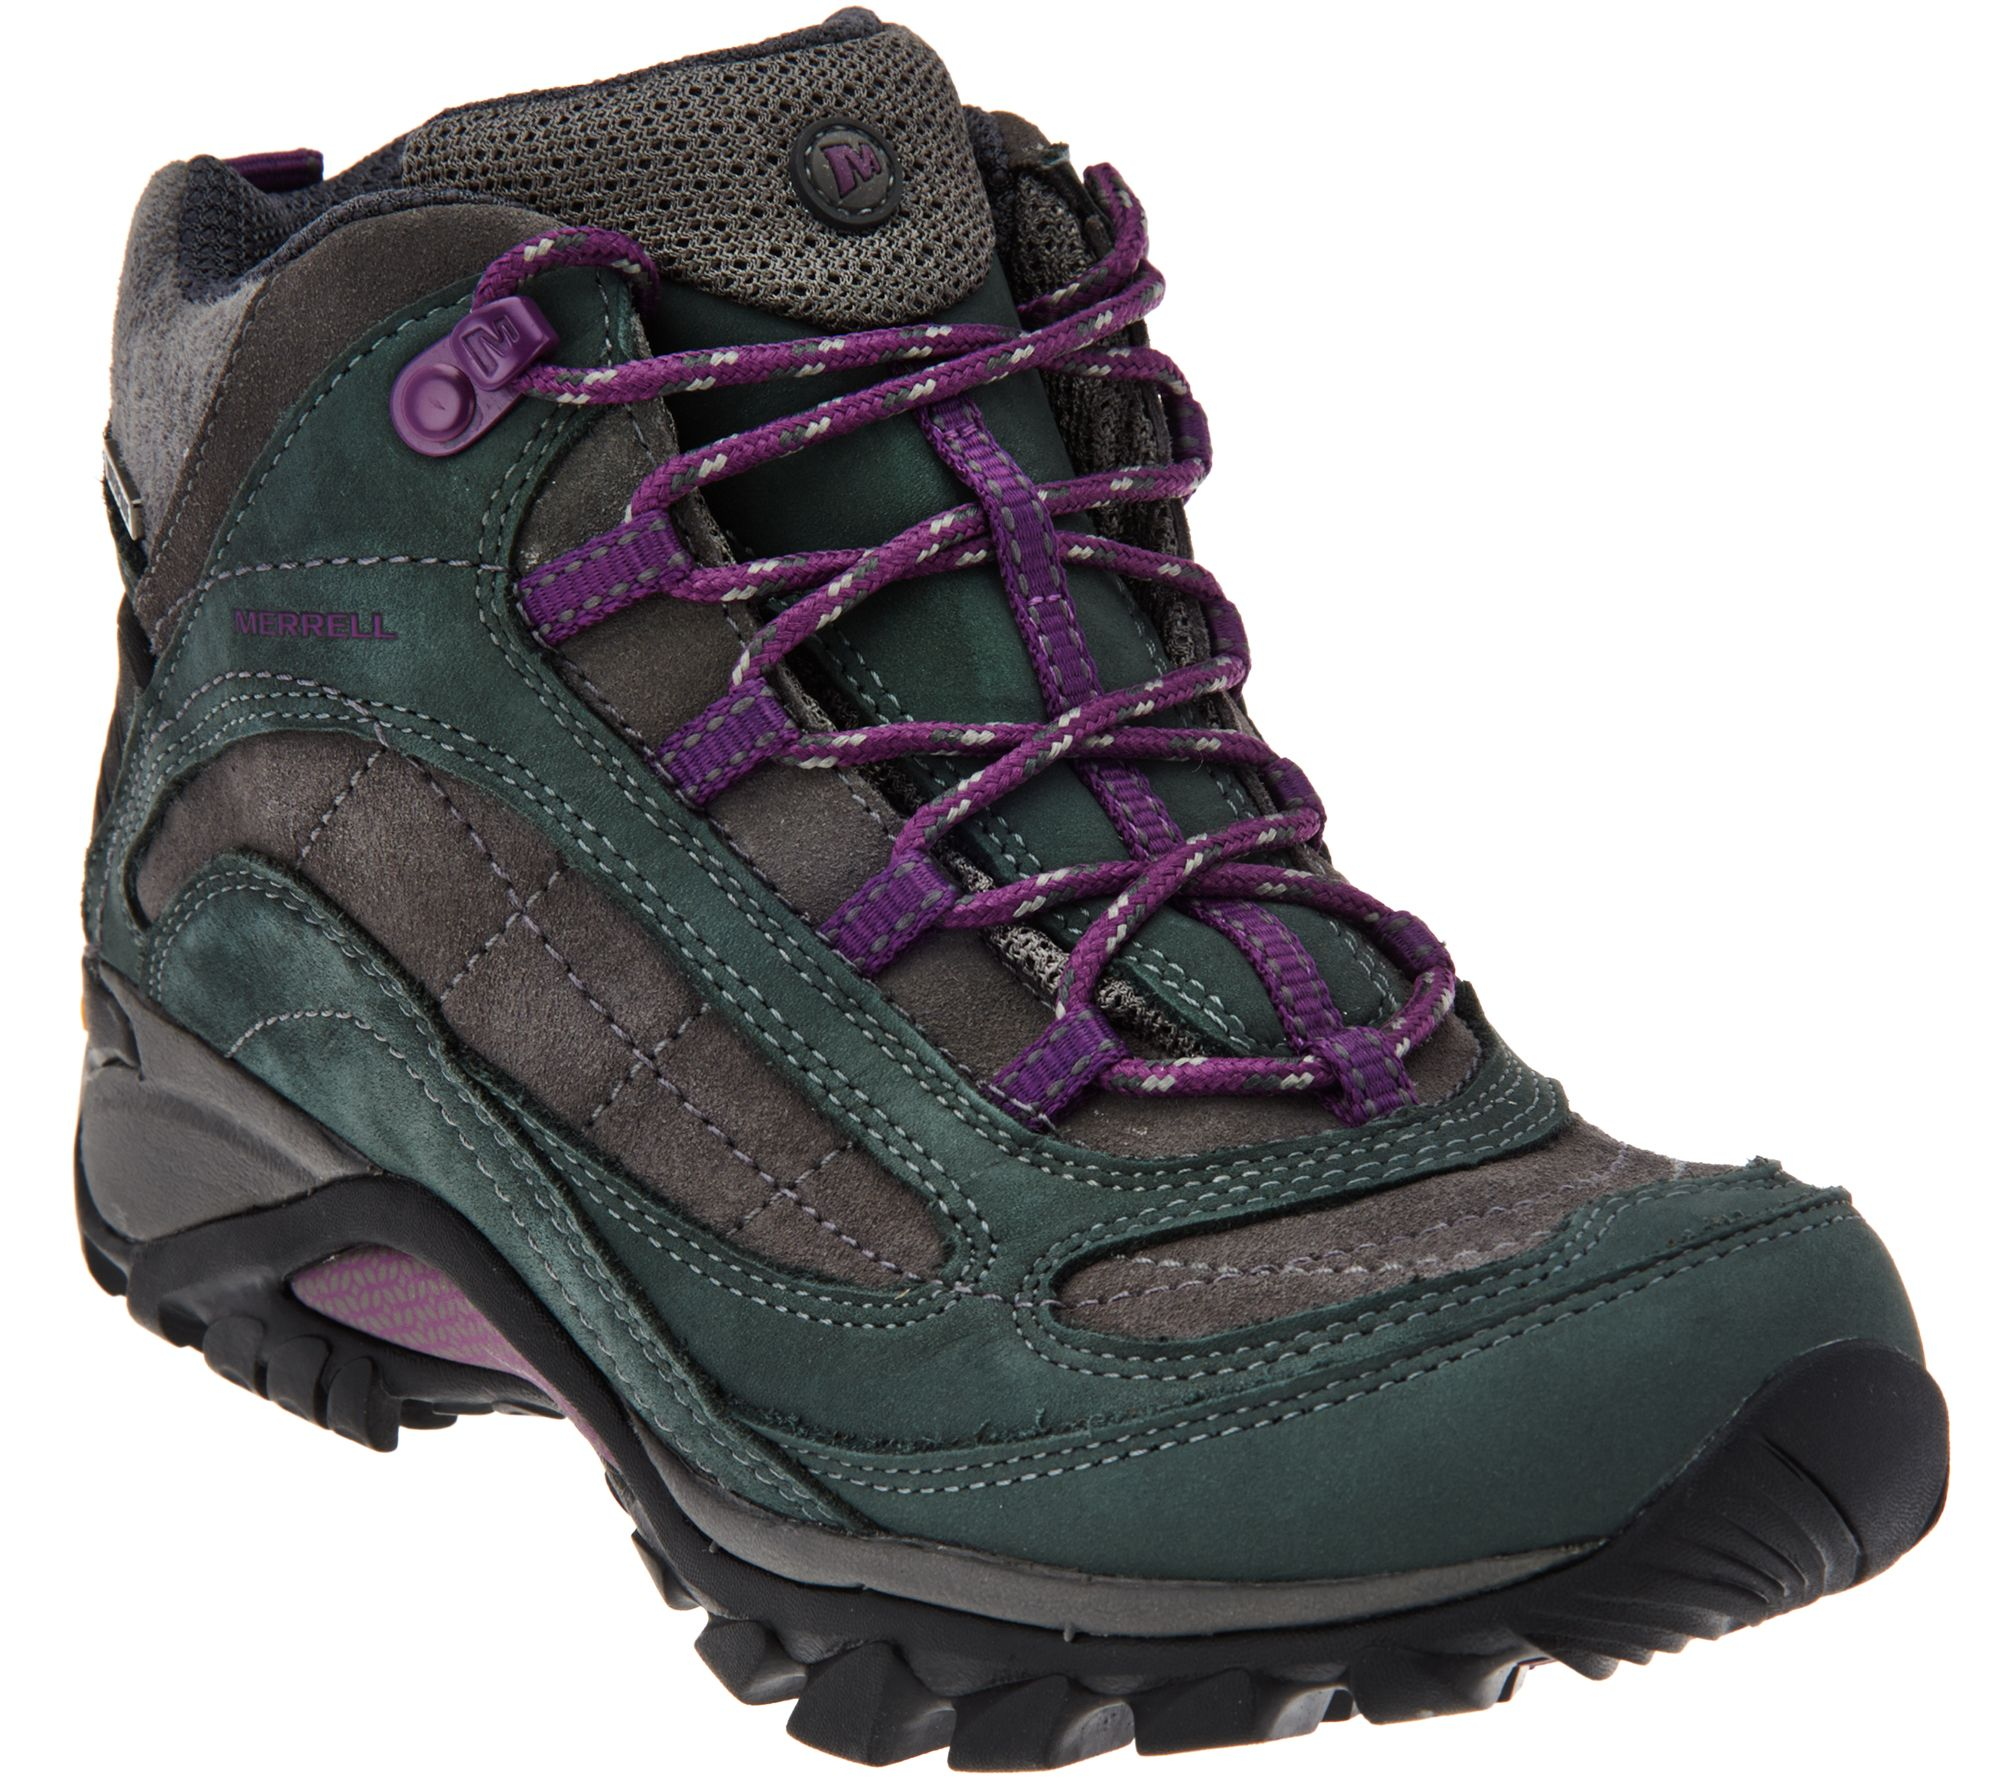 Merrell Waterproof Leather Hiking Boots Siren Mid Page